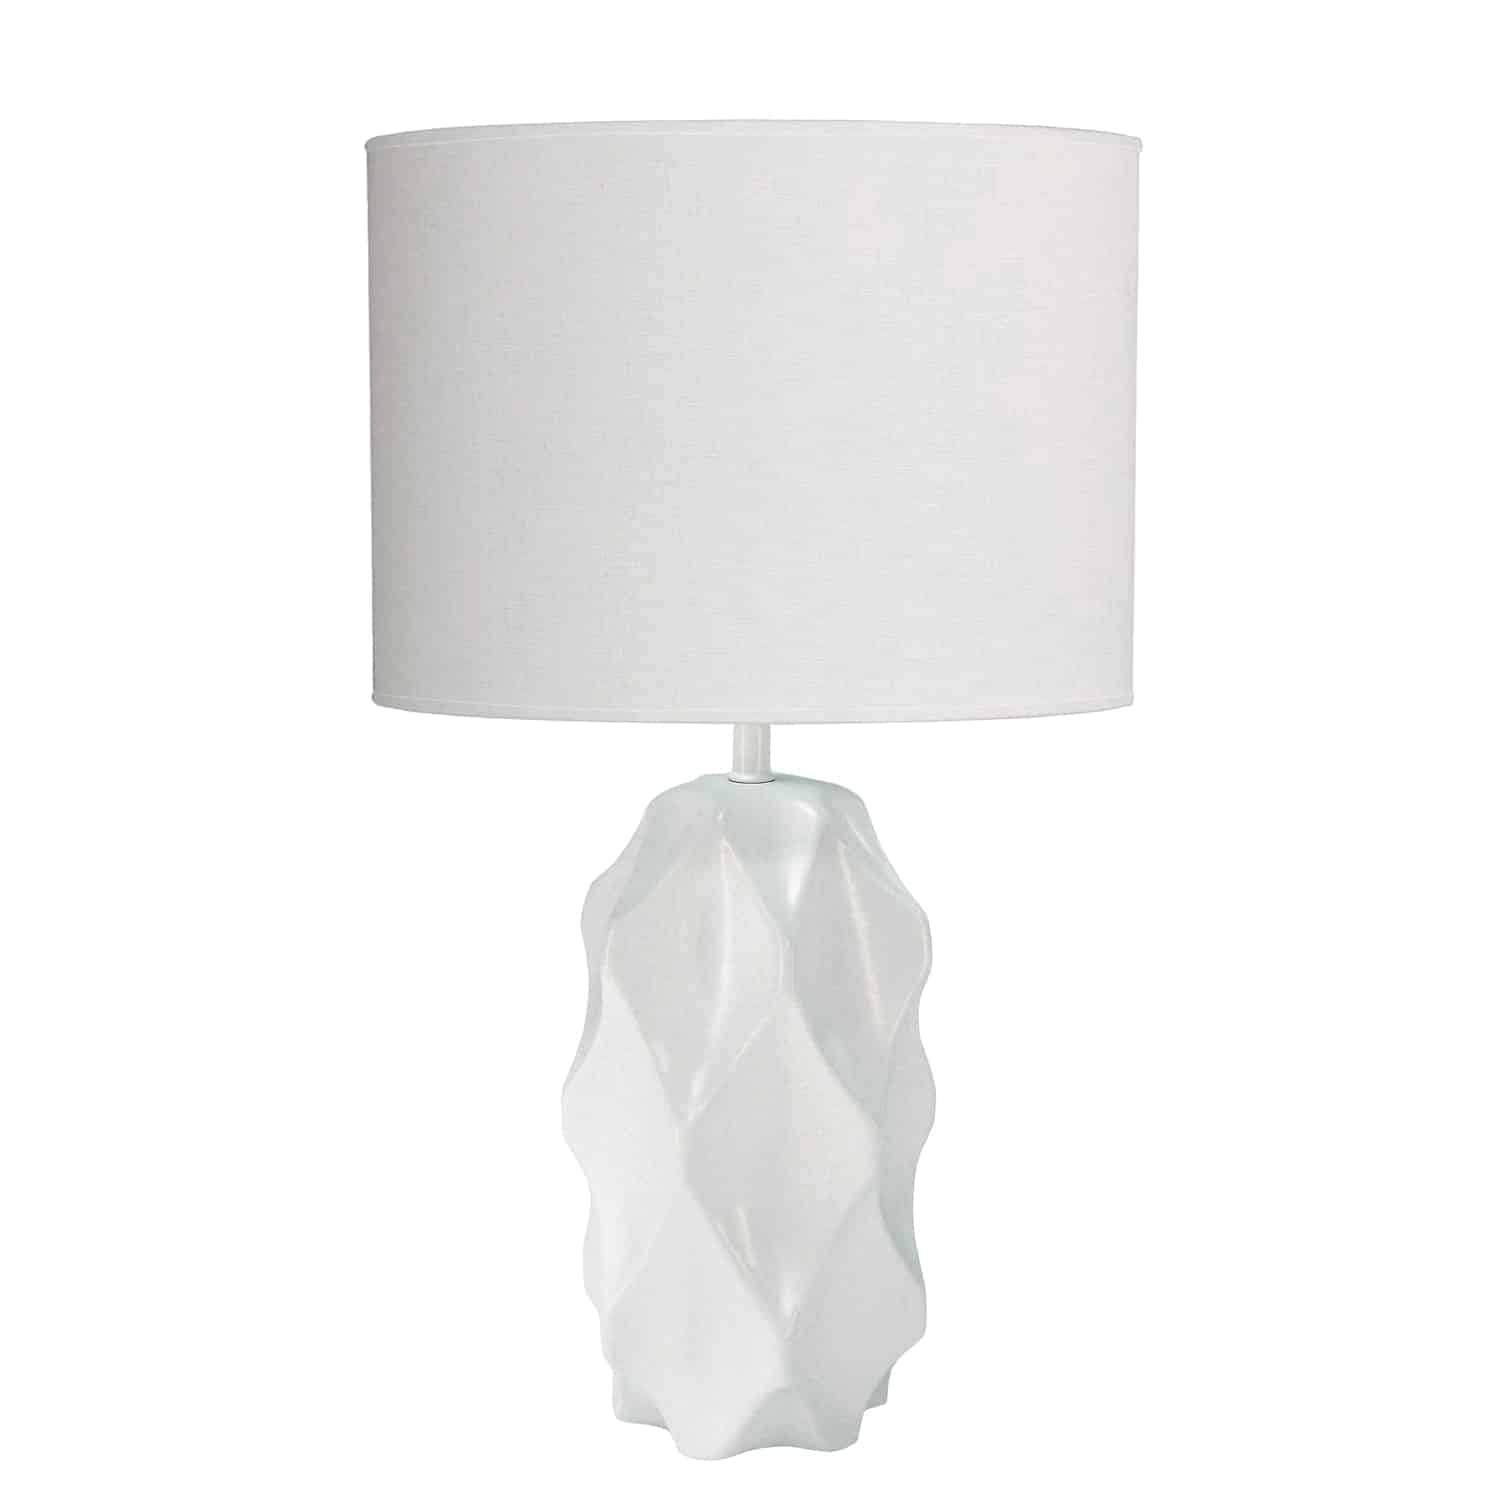 1 Light Incandescent Table Lamp White Finish with White Shade